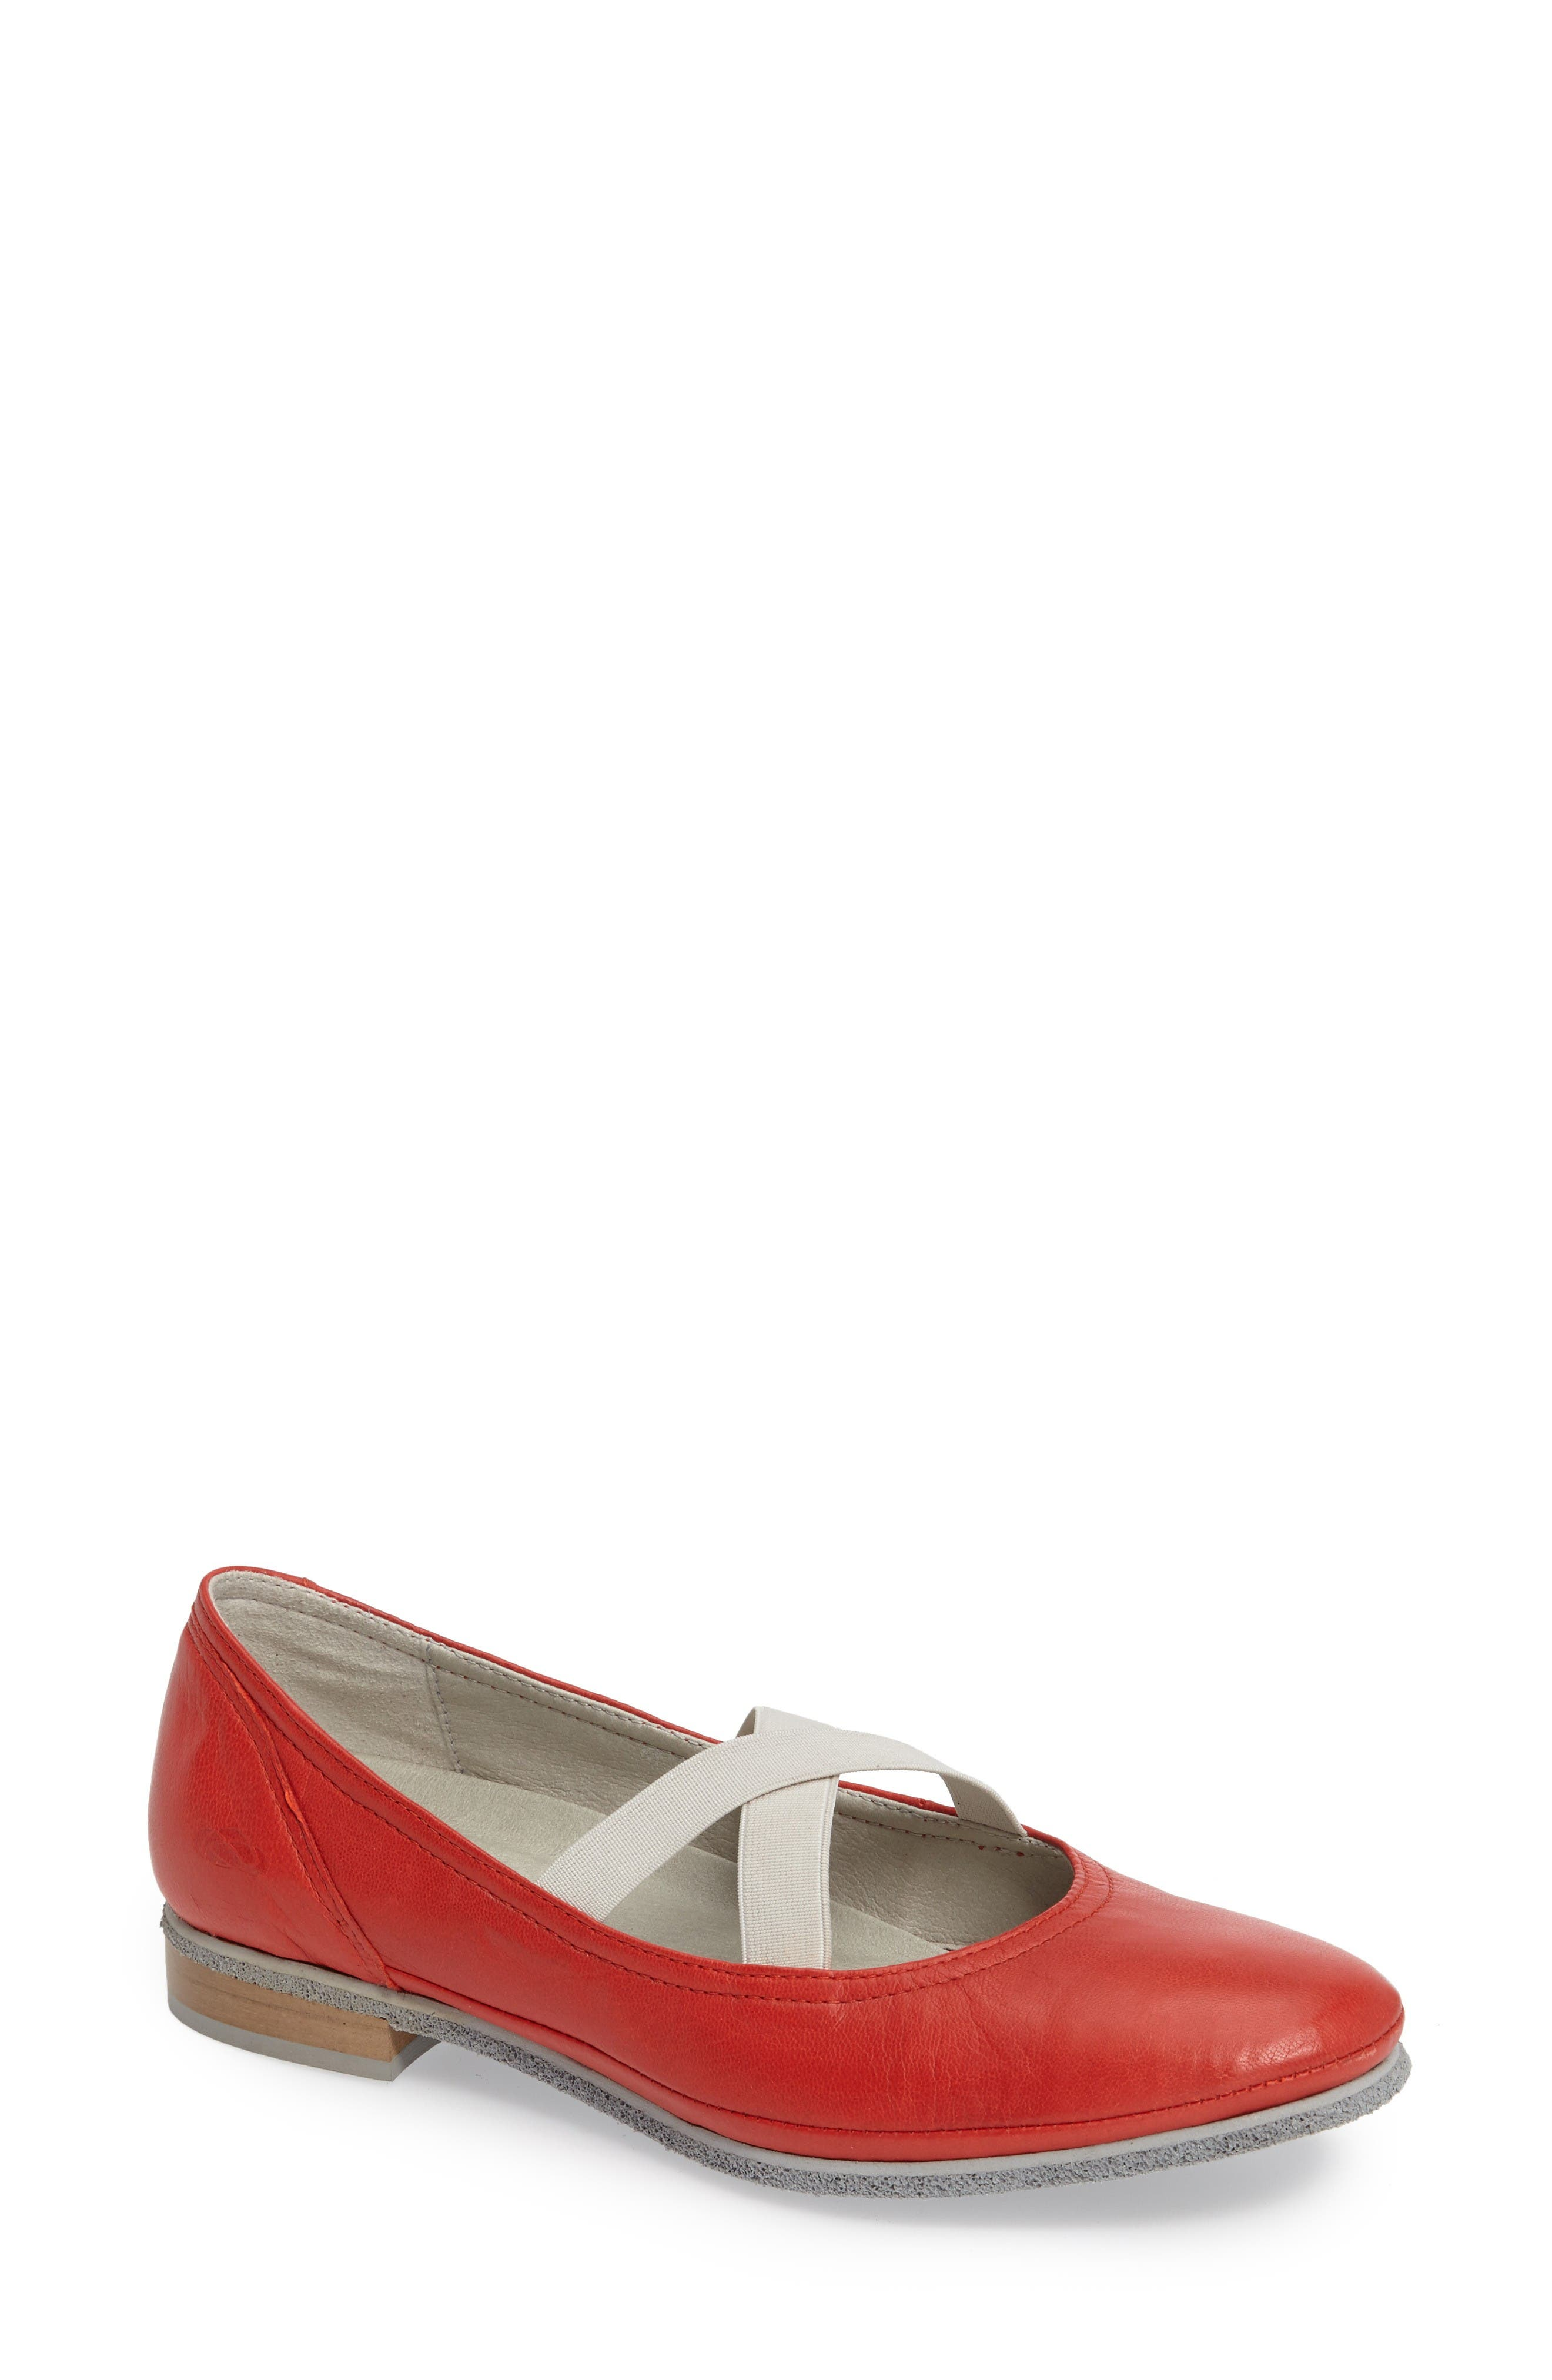 Ballet Strappy Flat,                             Main thumbnail 1, color,                             Red Leather